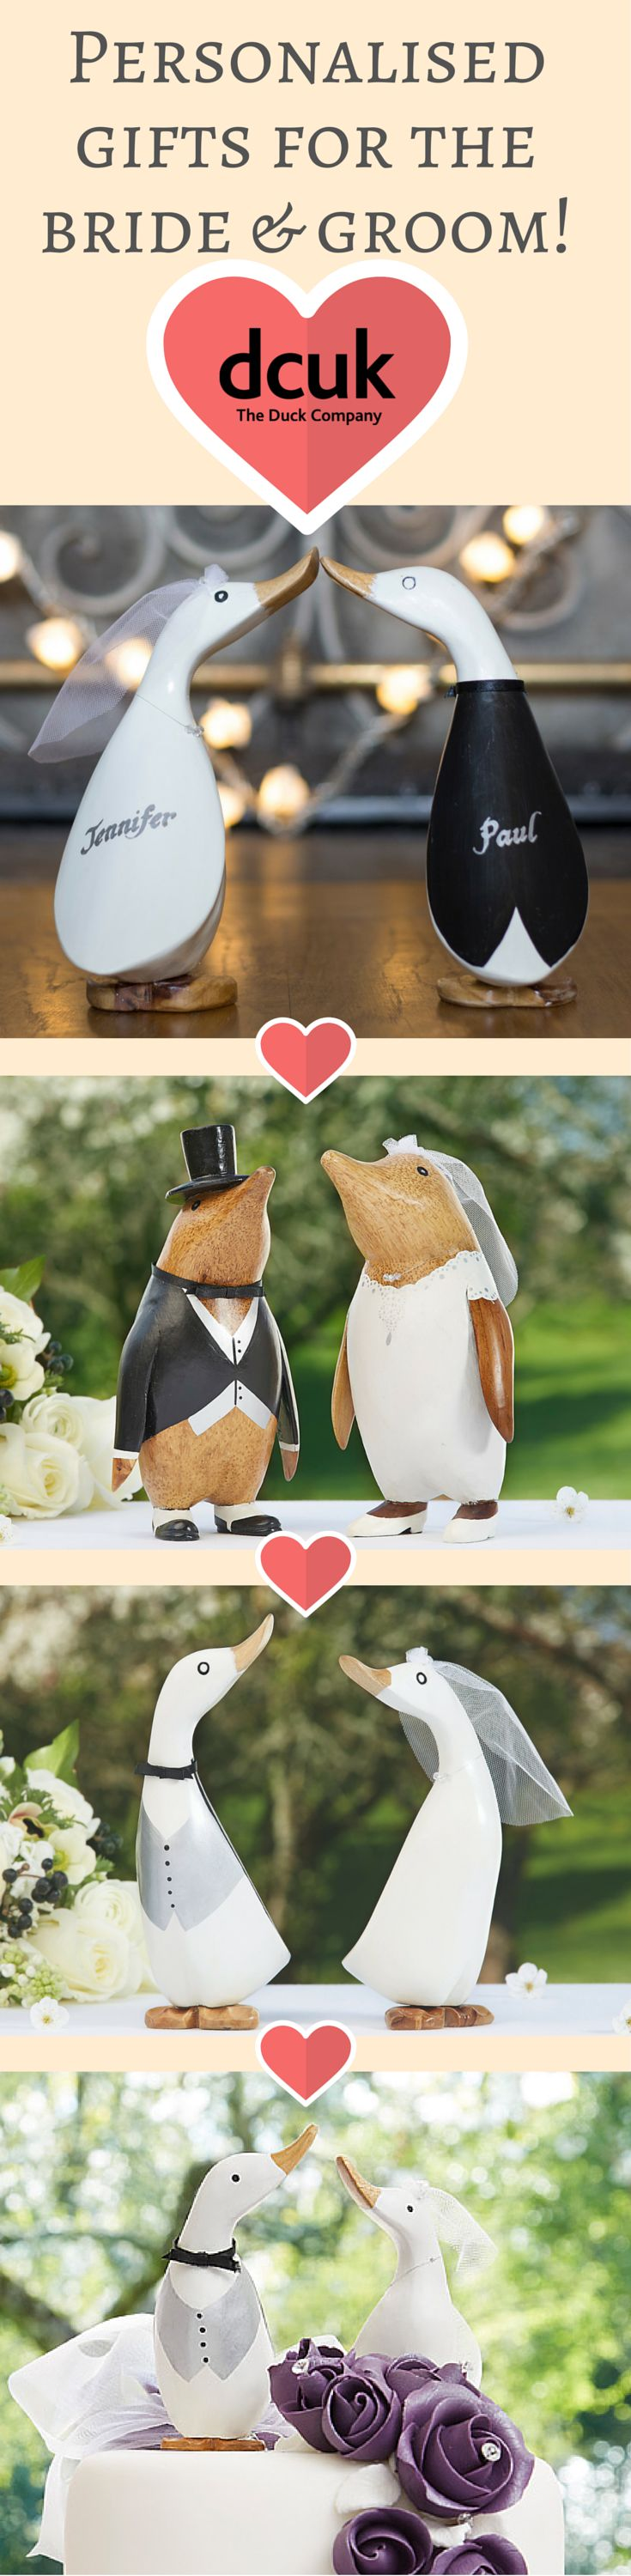 If you are looking for the perfect gift for the perfect couple, our personalised bride and groom gift ducks and penguins are bound to impress! Each is hand carved and hand painted, and can be personalised with the name of the bride and groom. Beautifully presented in a gift box - a lasting reminder of their happy day for years to come! Available in a variety of styles, and we have bride and groom cake toppers too! Please take a look at our Wedding gift selection on our website!